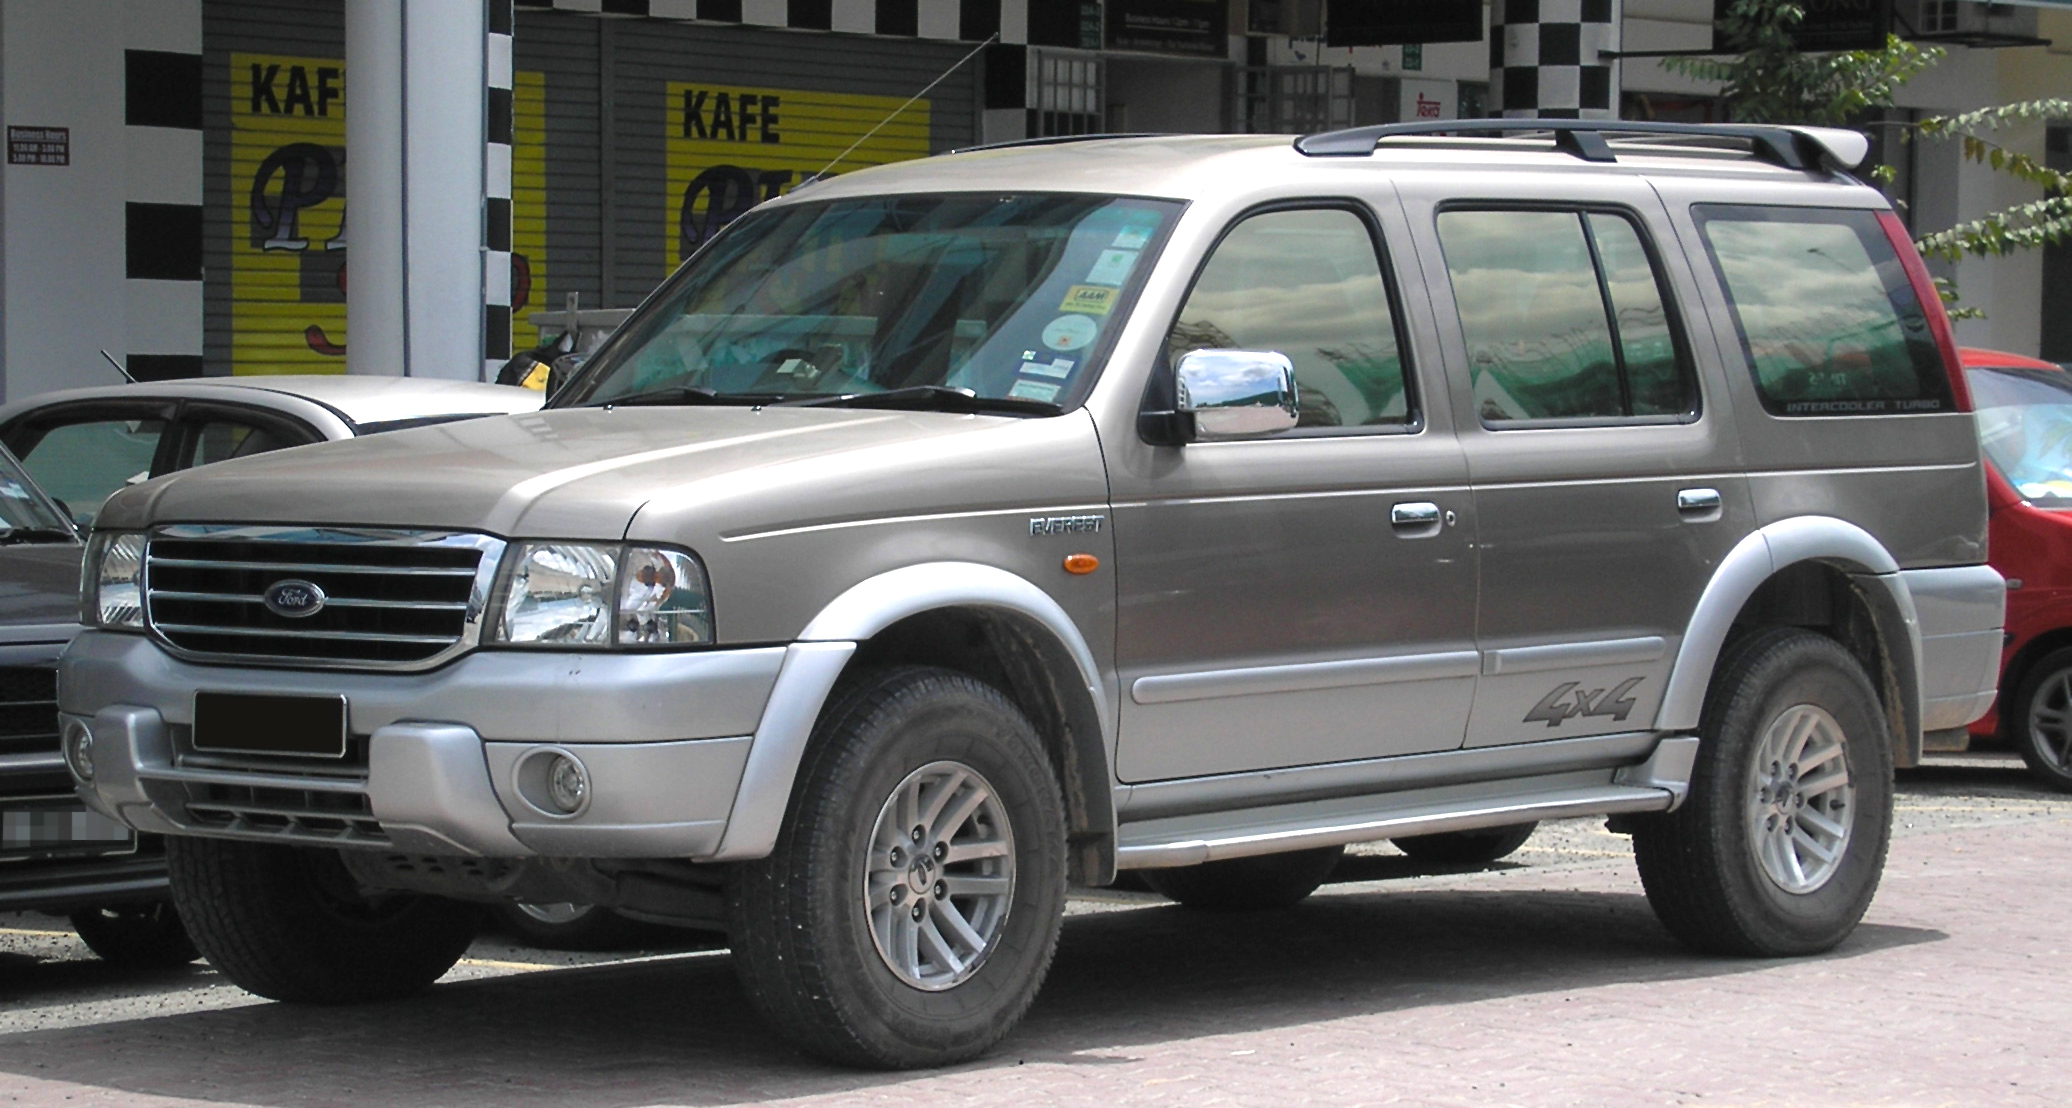 ford everest 2005 with File Ford Everest  First Generation   Front   Serdang on Product product id 239 also Ford Escape 3 as well Ford F550 also 212826188 Install Guide 5R55S 5R55W 5R55N Ford Automatic Transmission likewise Trailblazer Bushwacker Fender Flare.